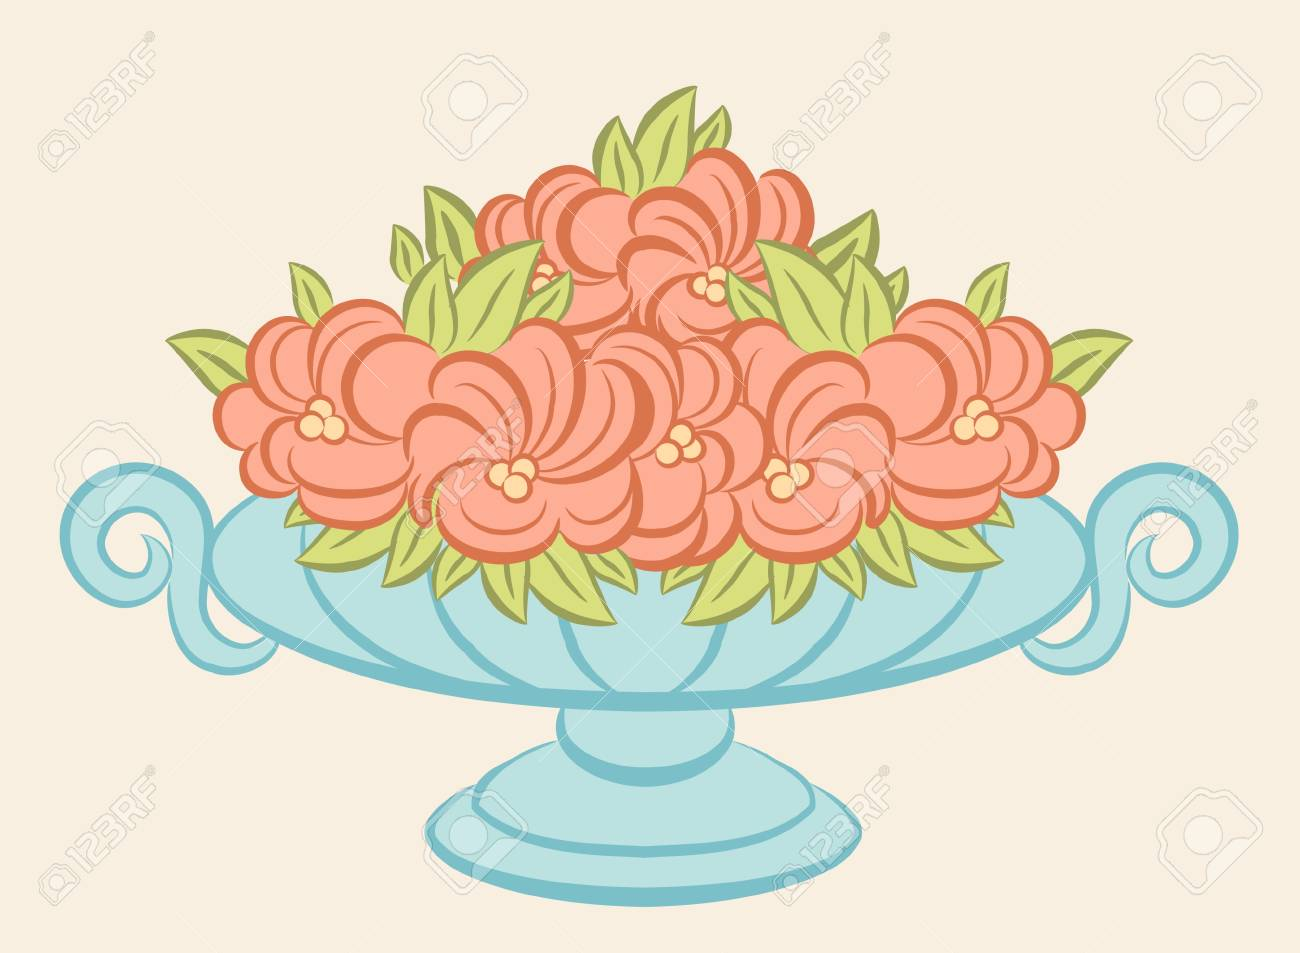 The vintage vase with flowers. Stock Photo - 10433562